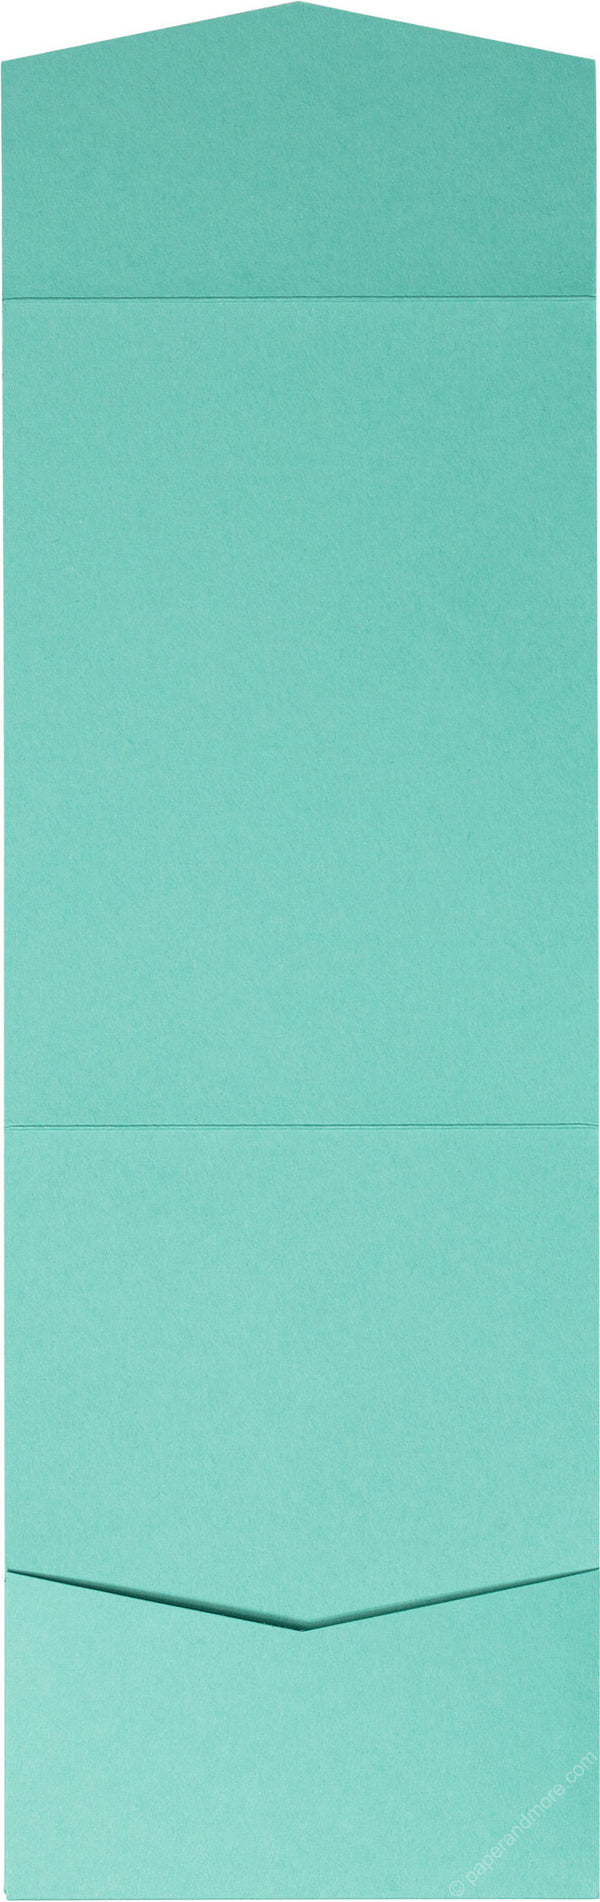 Tiffany Blue Solid Pocket Invitation Card, A7 Cascade - Paperandmore.com